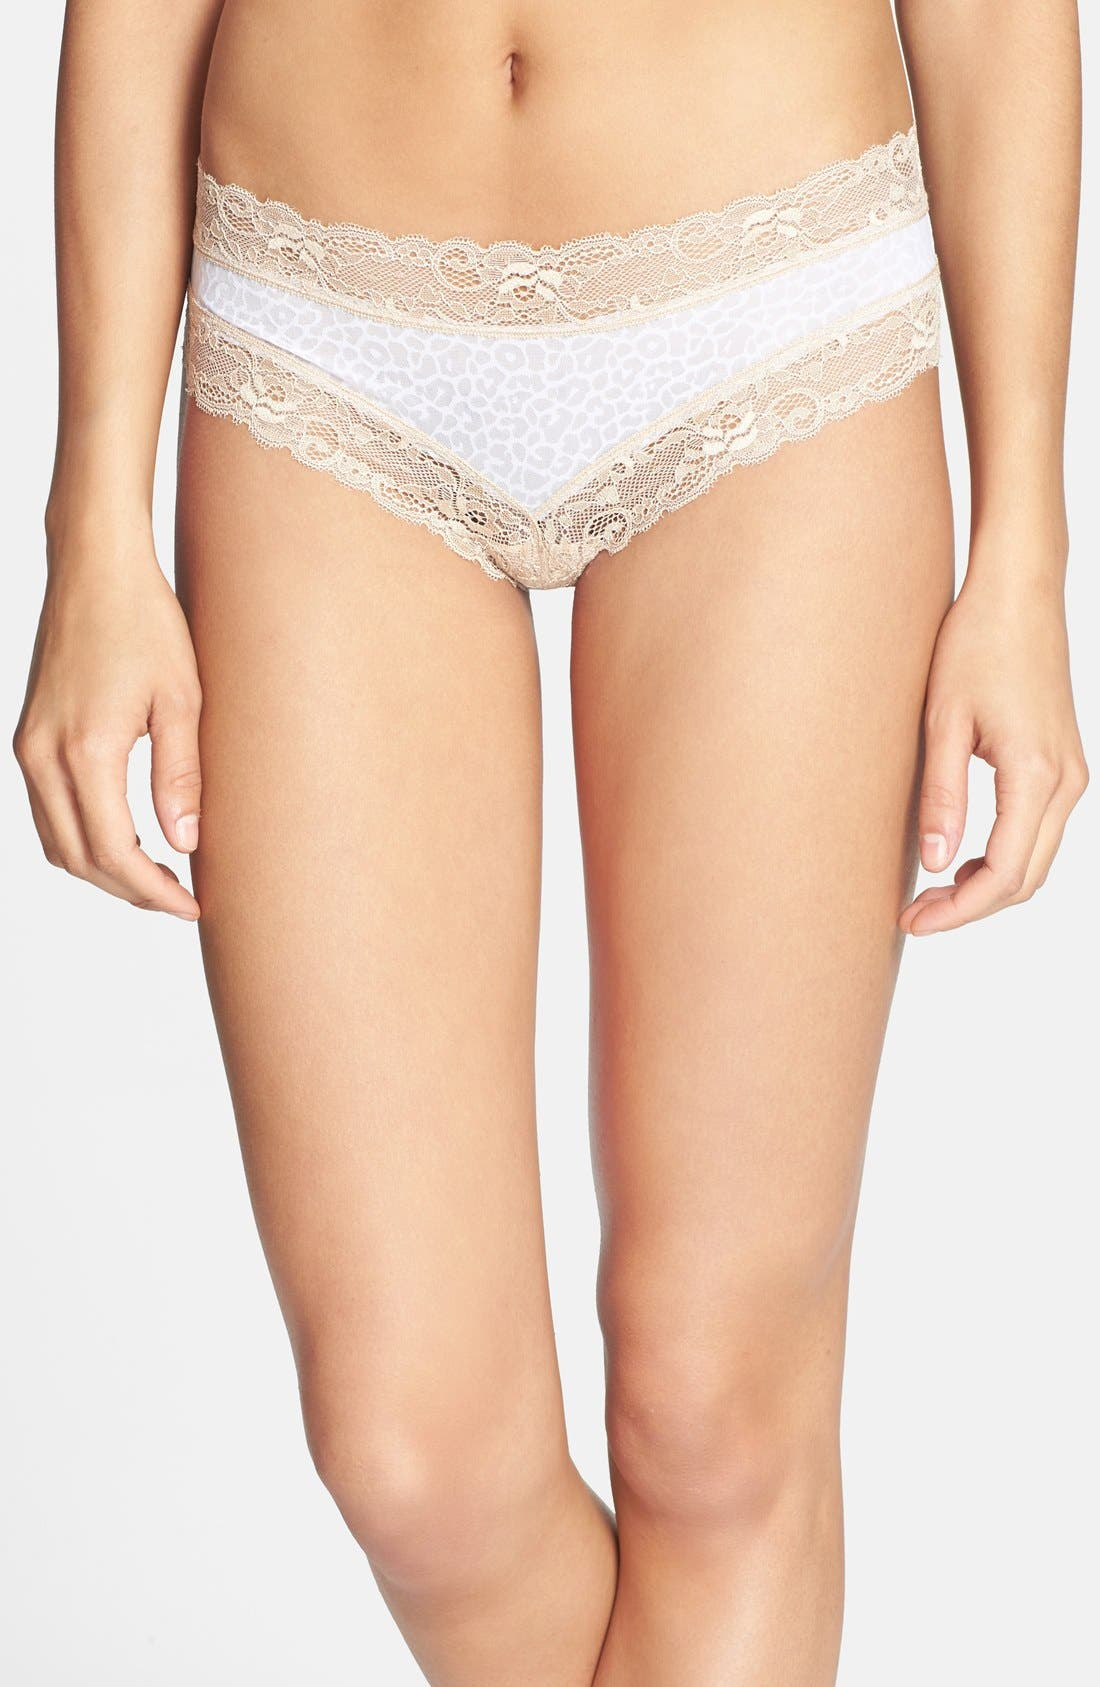 Alternate Image 1 Selected - Honeydew Intimates 'Marti' Lace Trim Microfiber Hipster Briefs